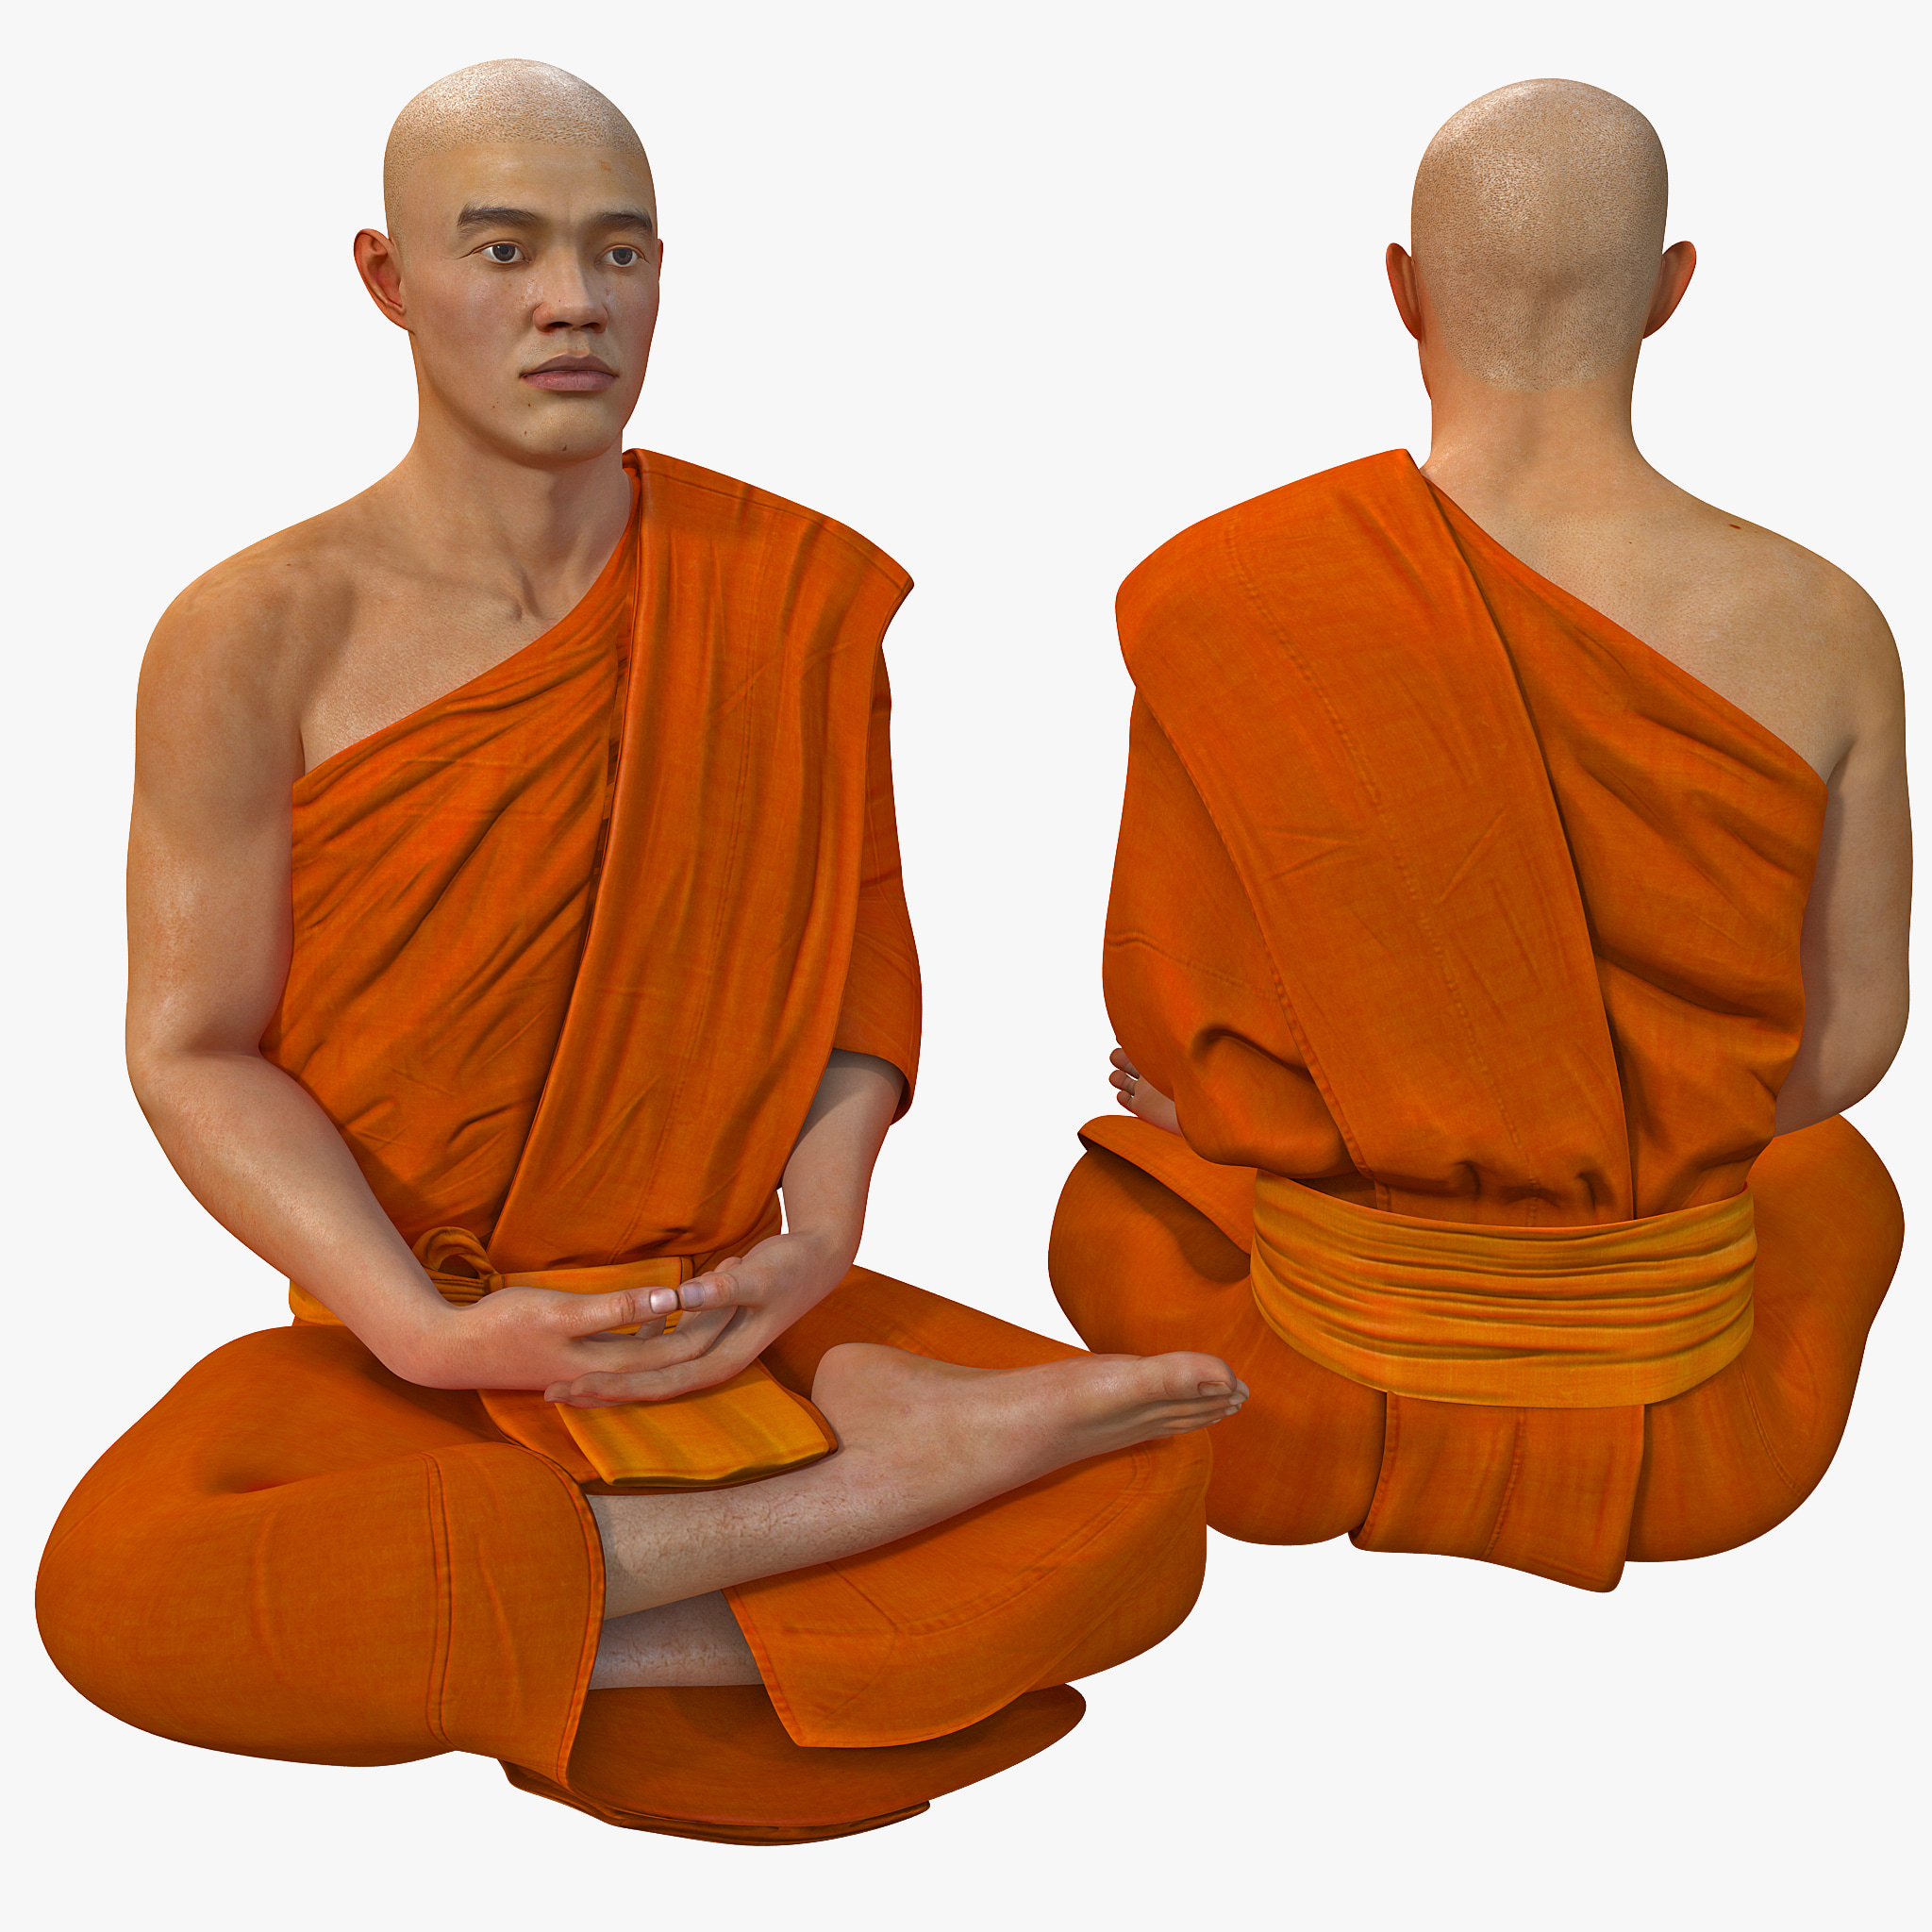 turnersburg buddhist single men Buddhist men 262 likes 1 talking about this meet buddhist singles in your city --   -- create your free profile today.